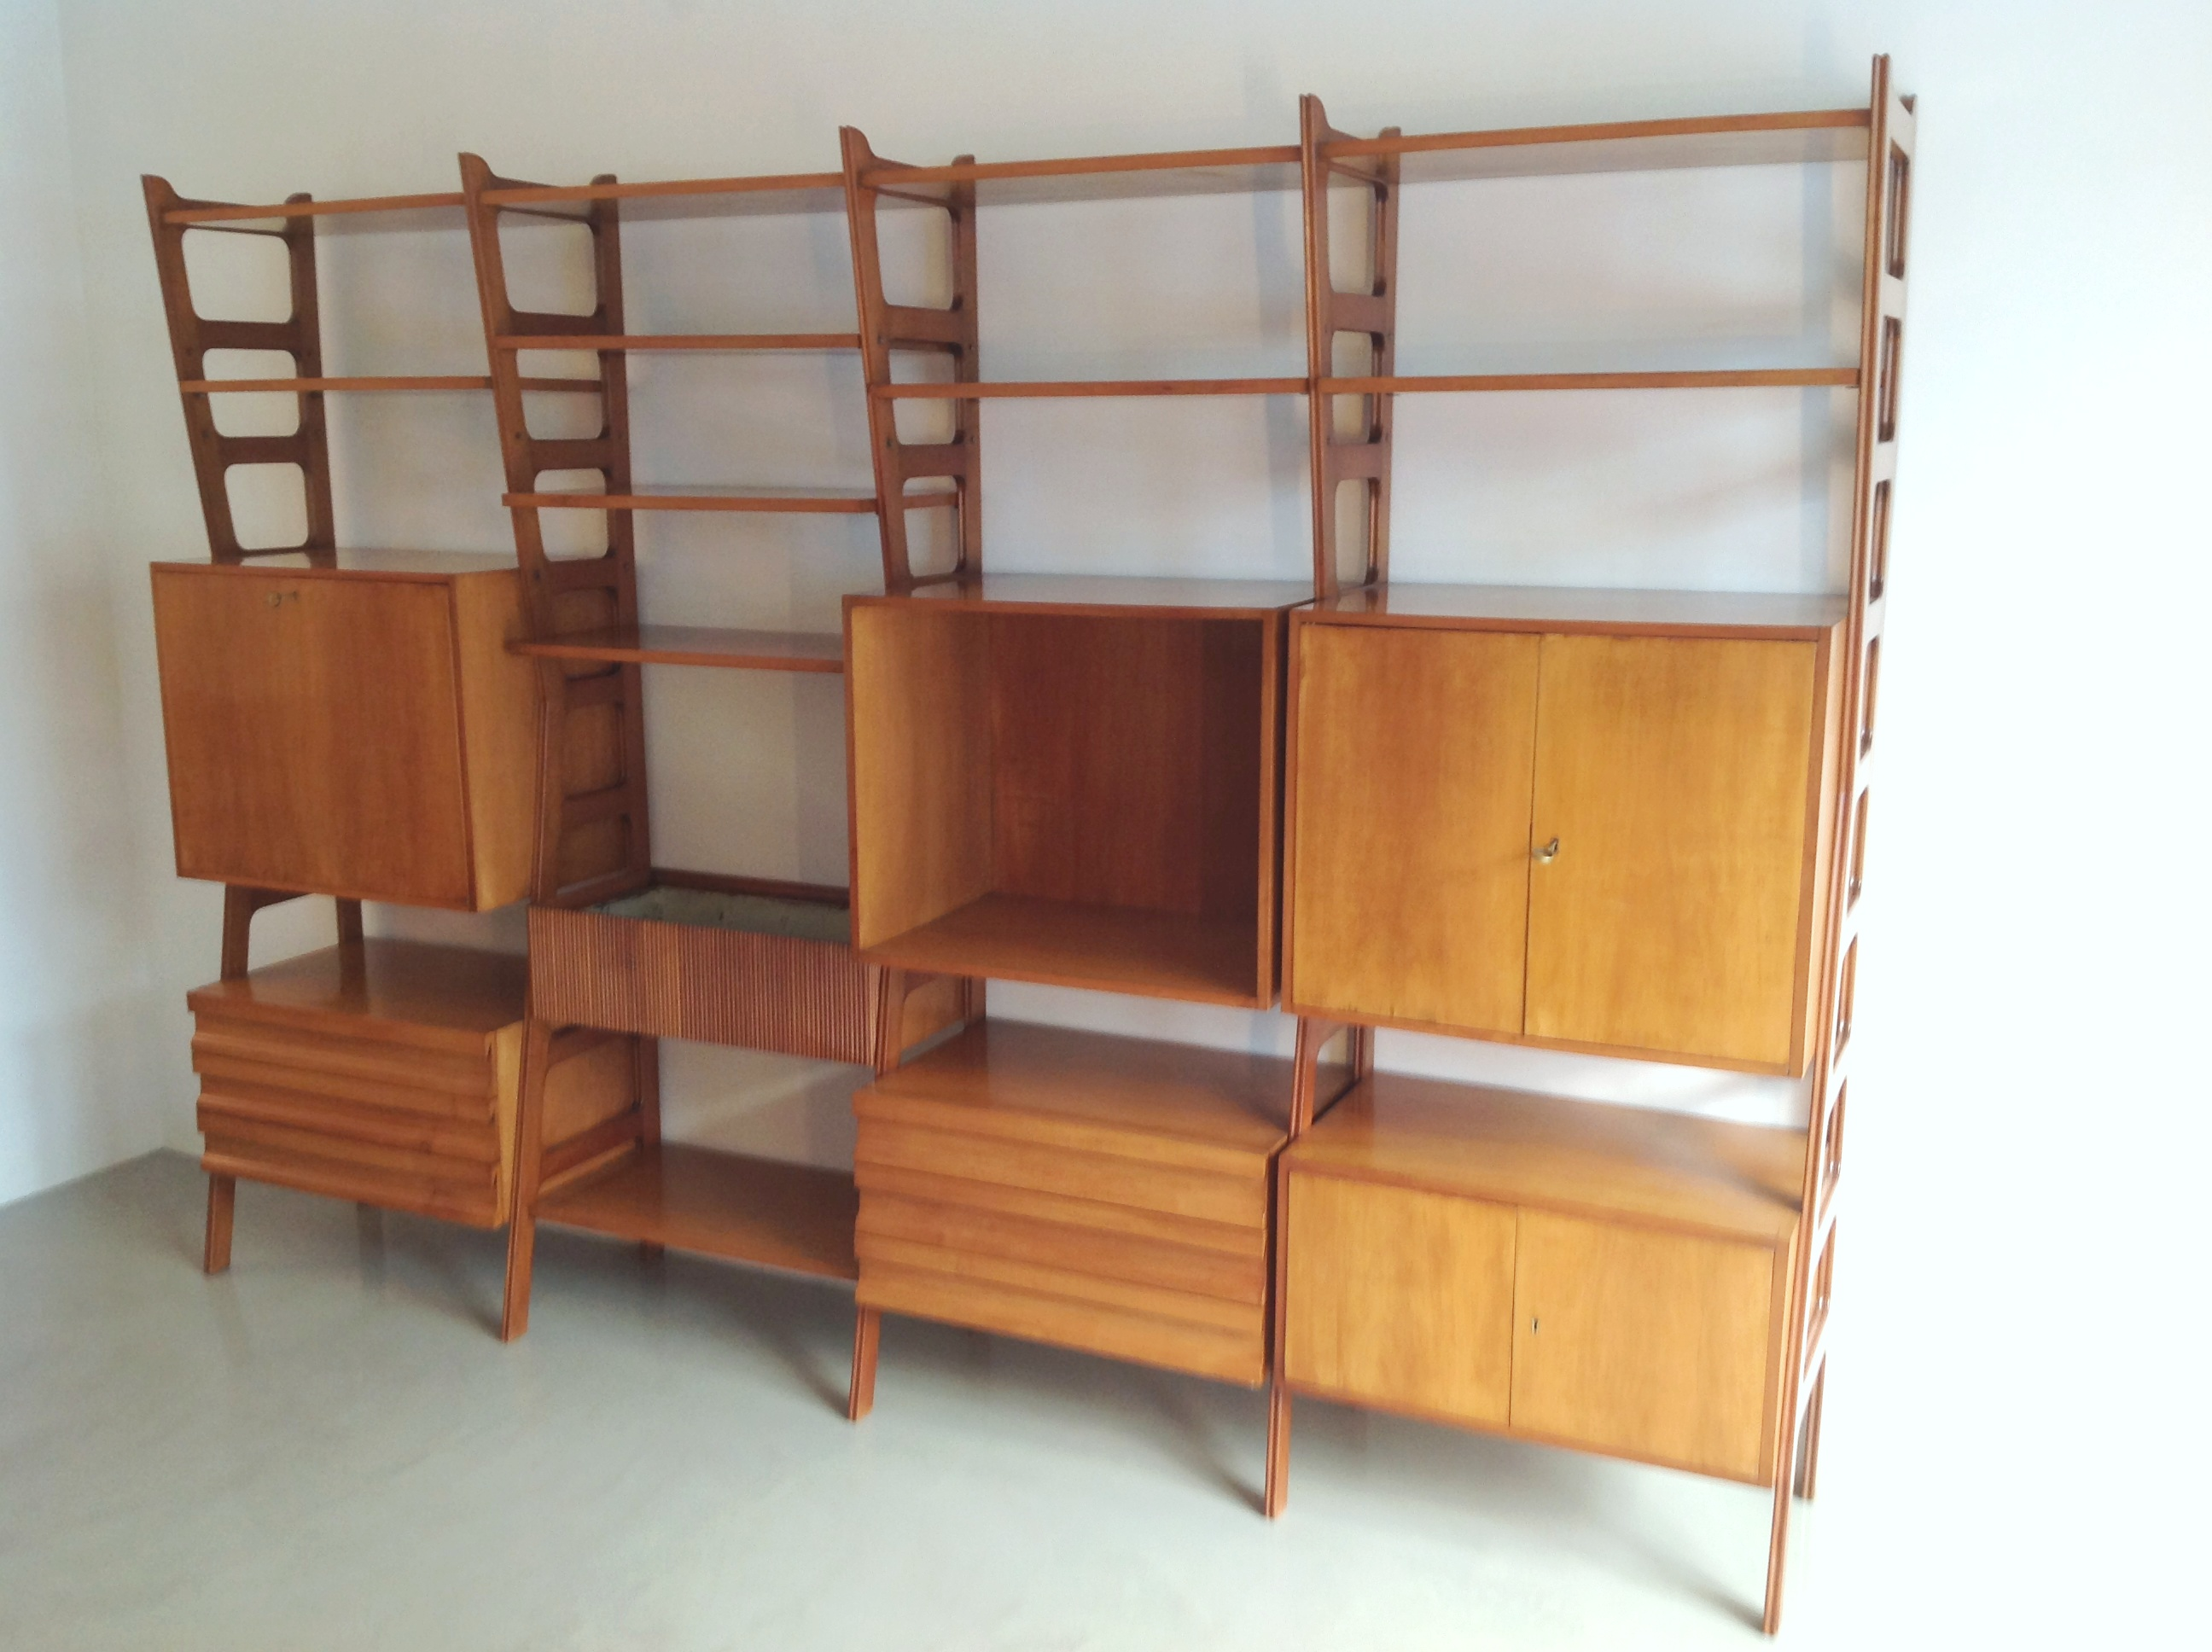 Italian Design Fifties Wall Unit Shelving style Ico Parisi | Modernism